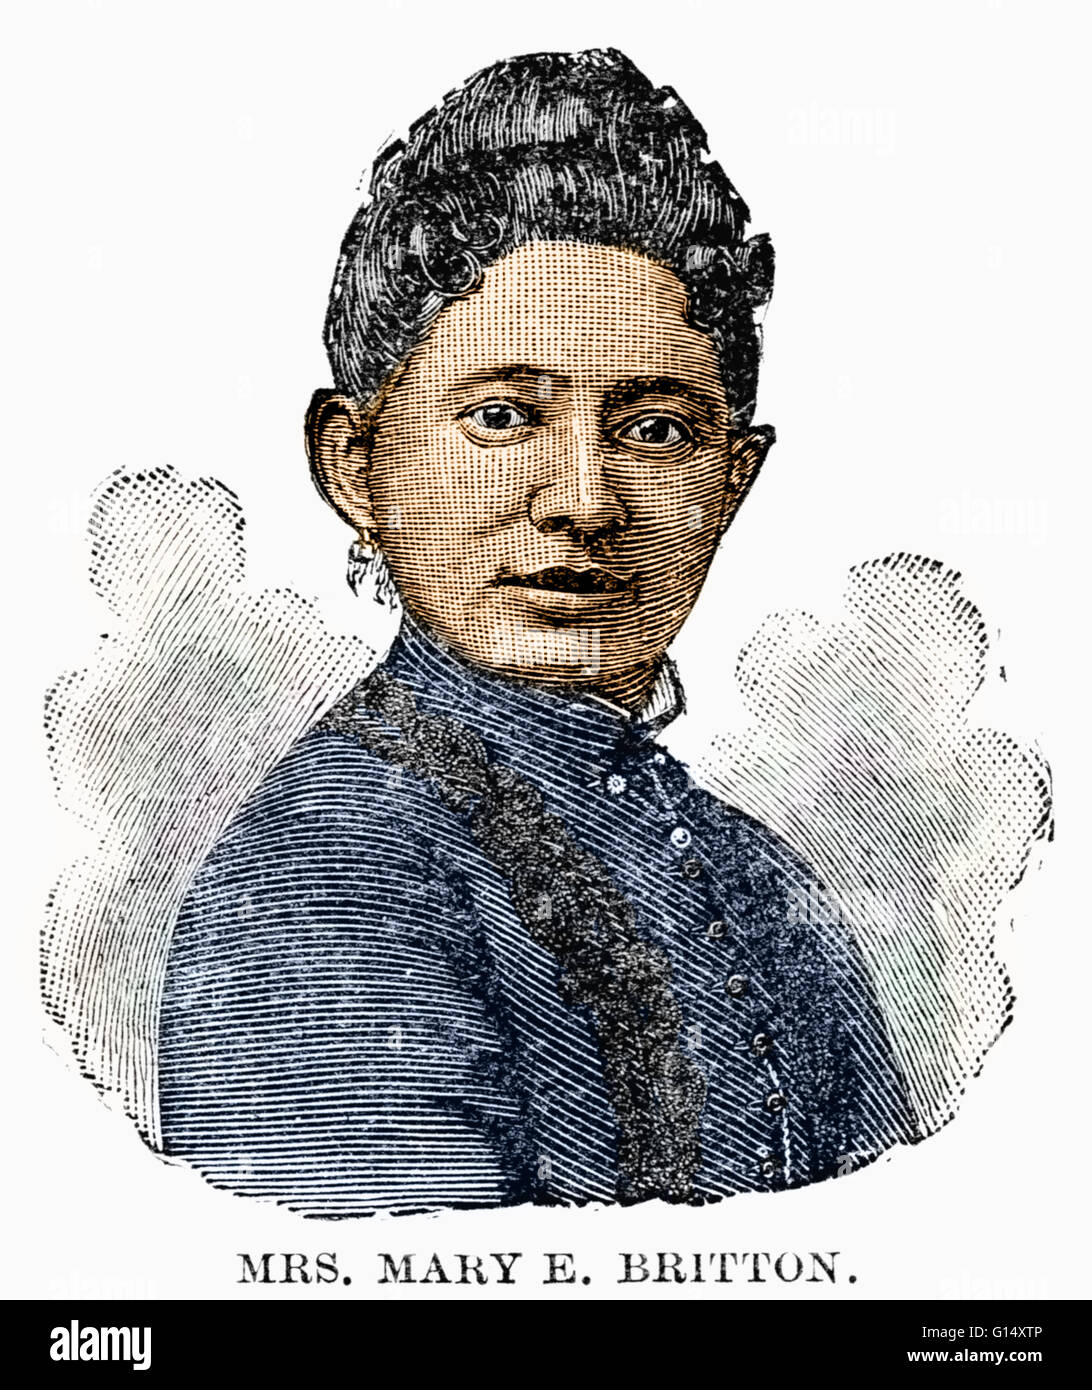 Mary E. Britton (1815 - 1925) was an African-American physician. She attended Berea College, the first institution Stock Photo